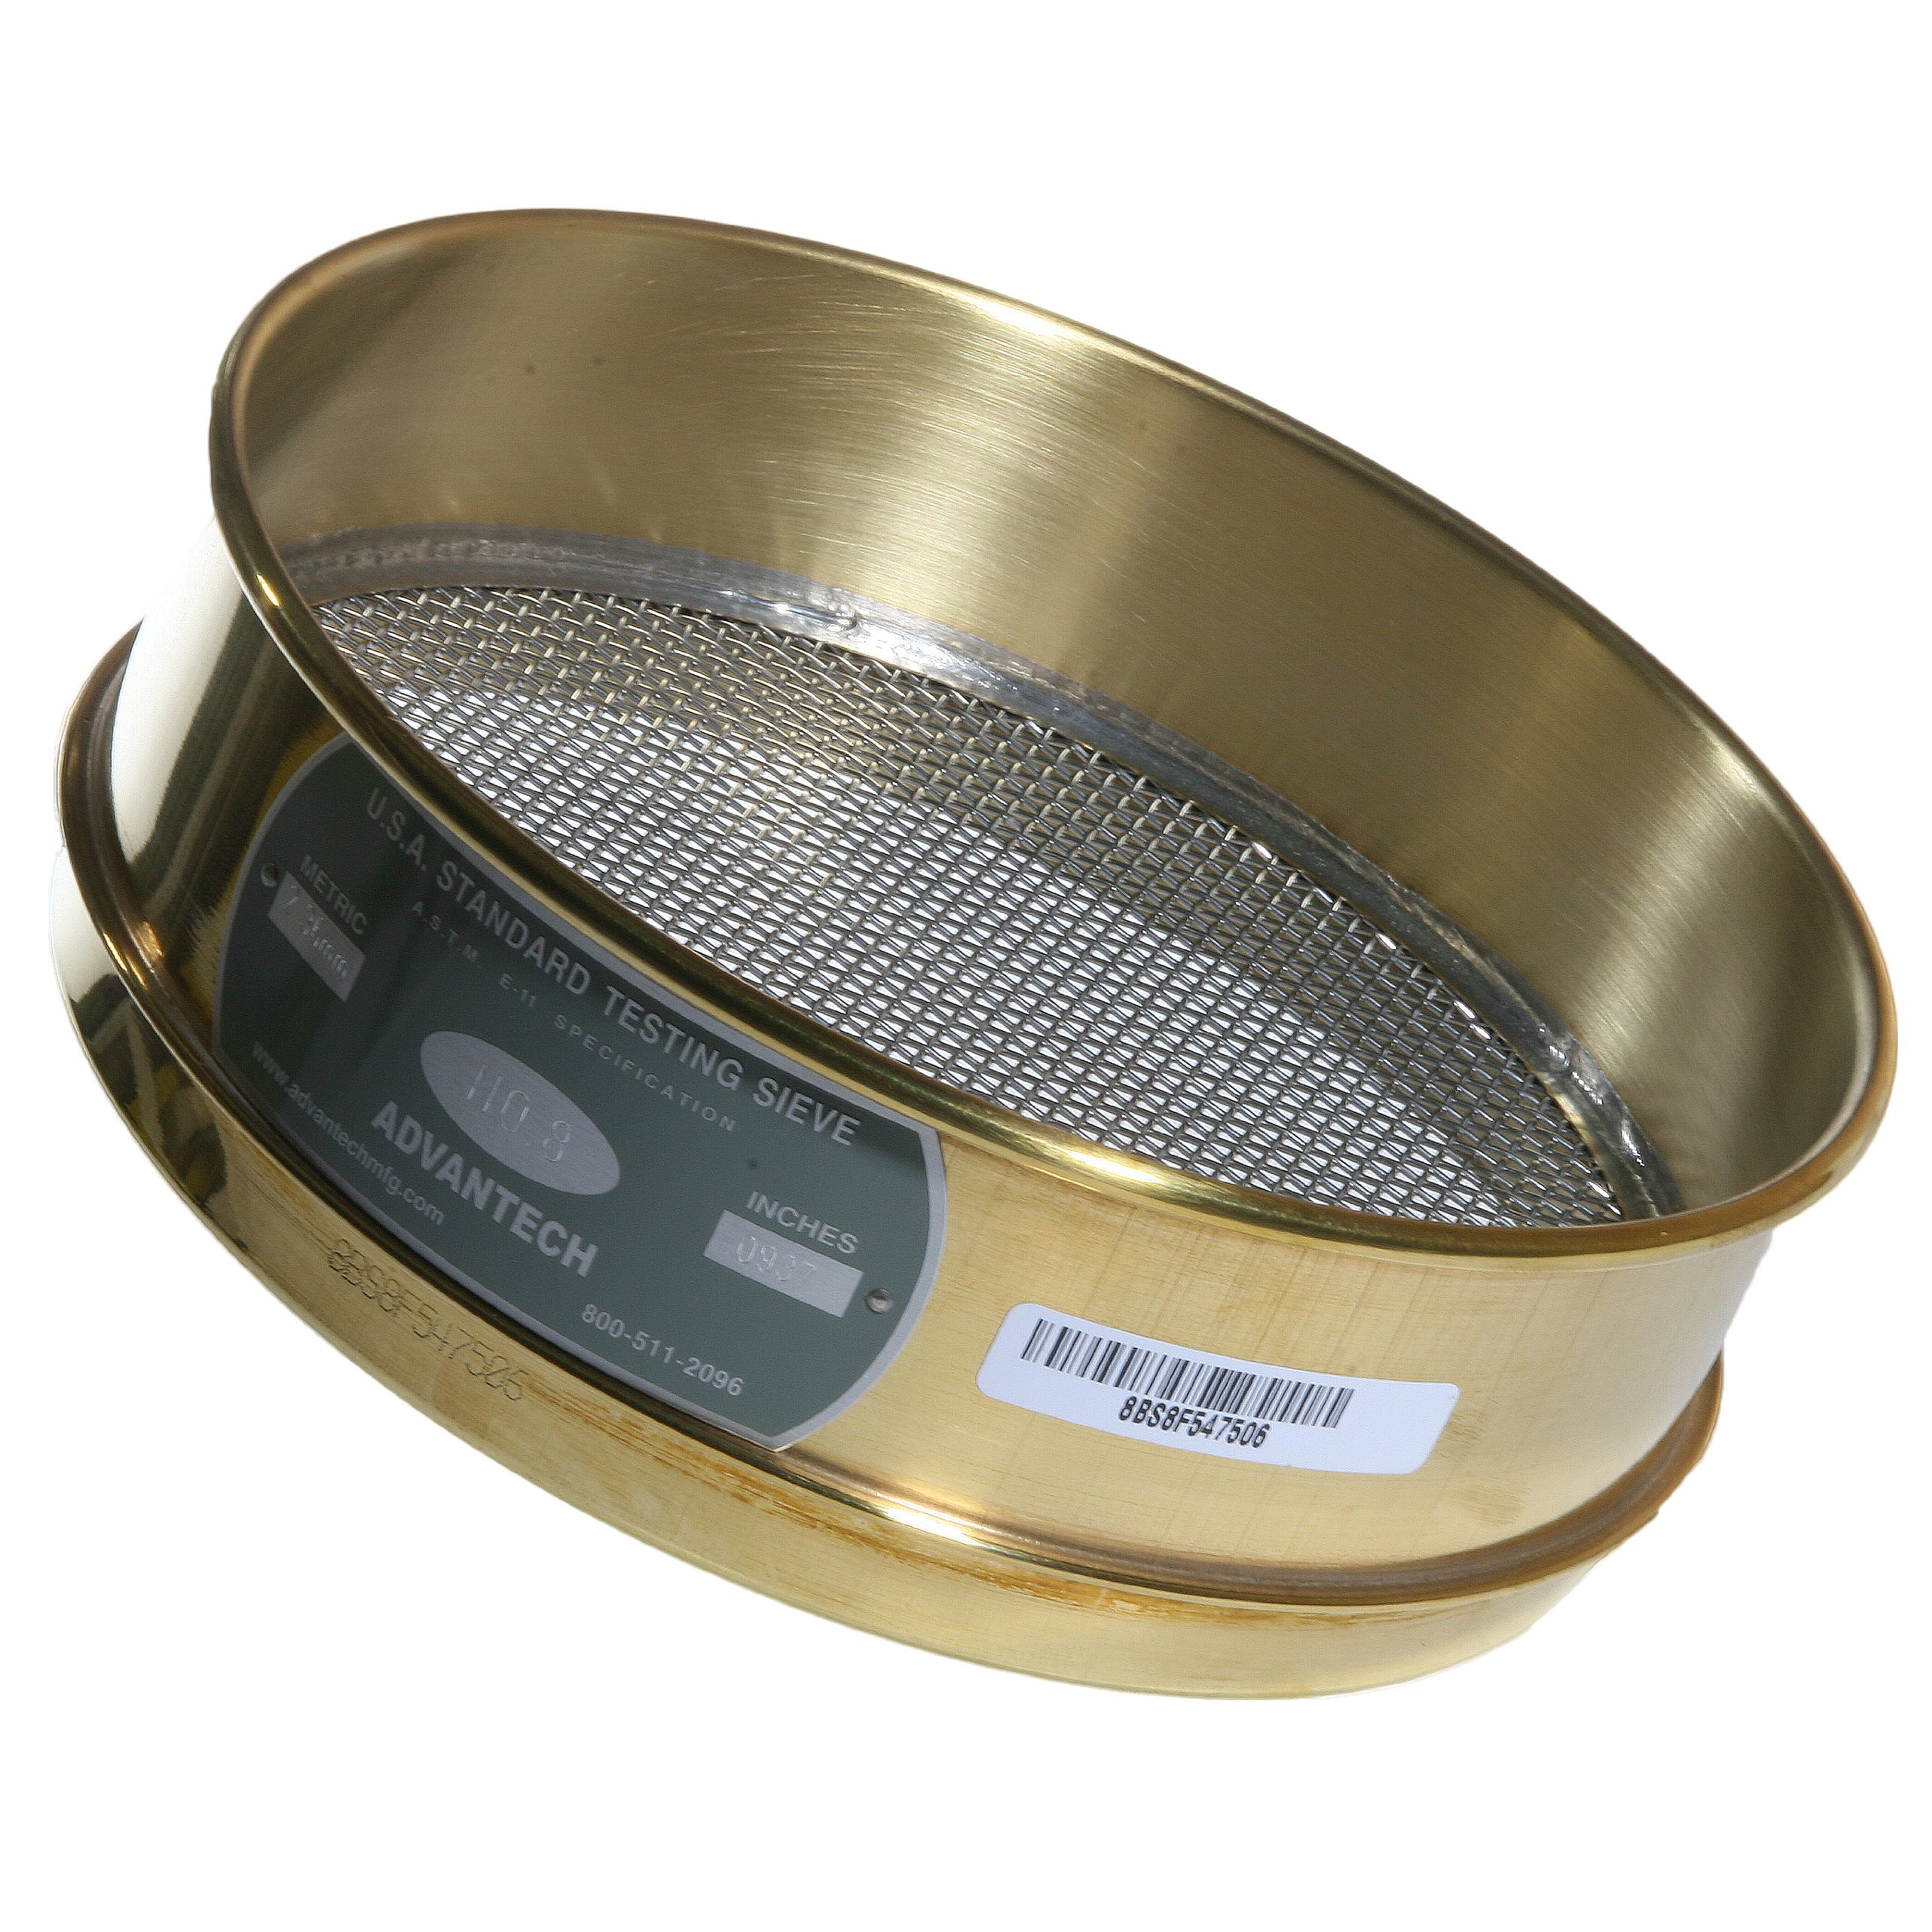 Advantech Brass Test Sieves with Stainless Steel Wire Cloth Mesh, 8'' Diameter, #8 Mesh, Full Height